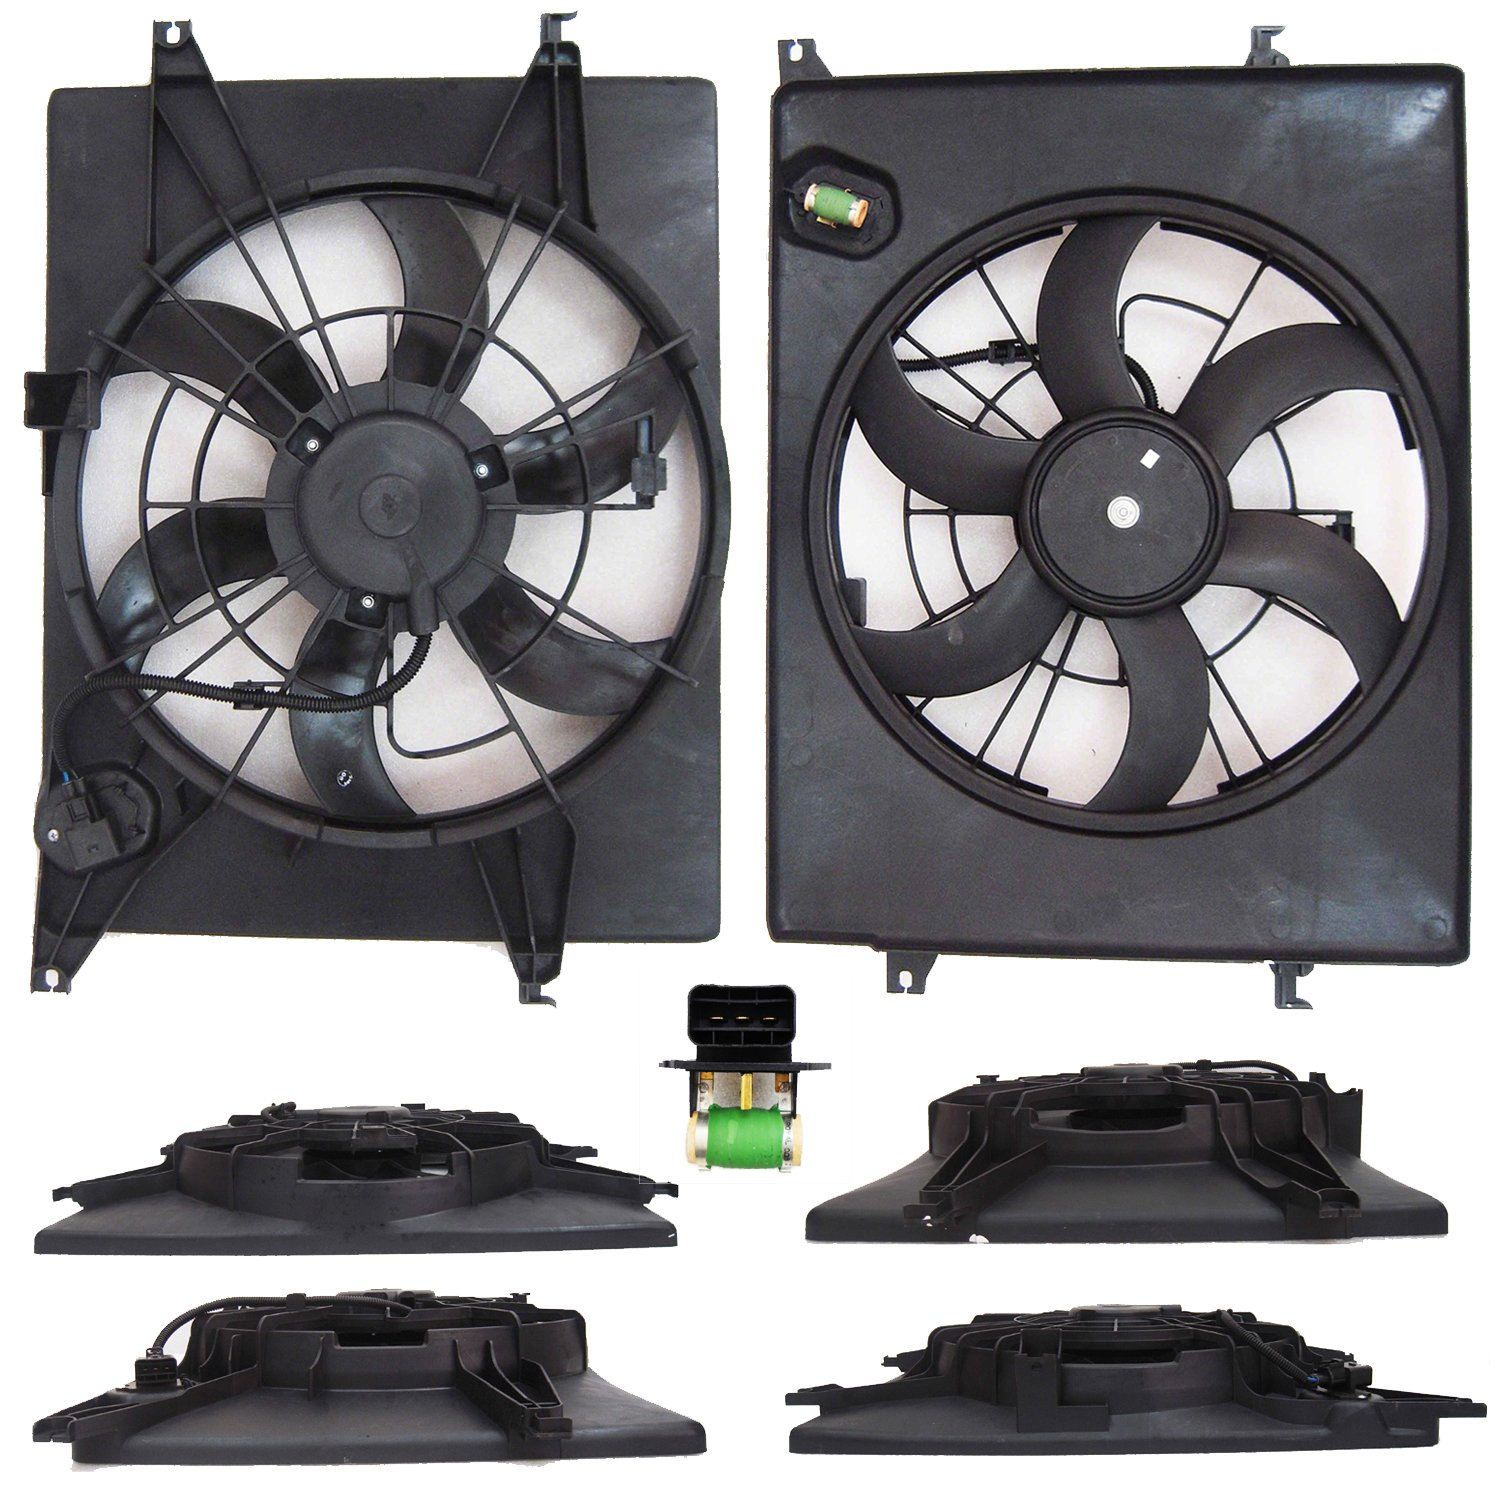 CPP Single Cooling Fan for Kia Optima, Hyundai Sonata HY3115139